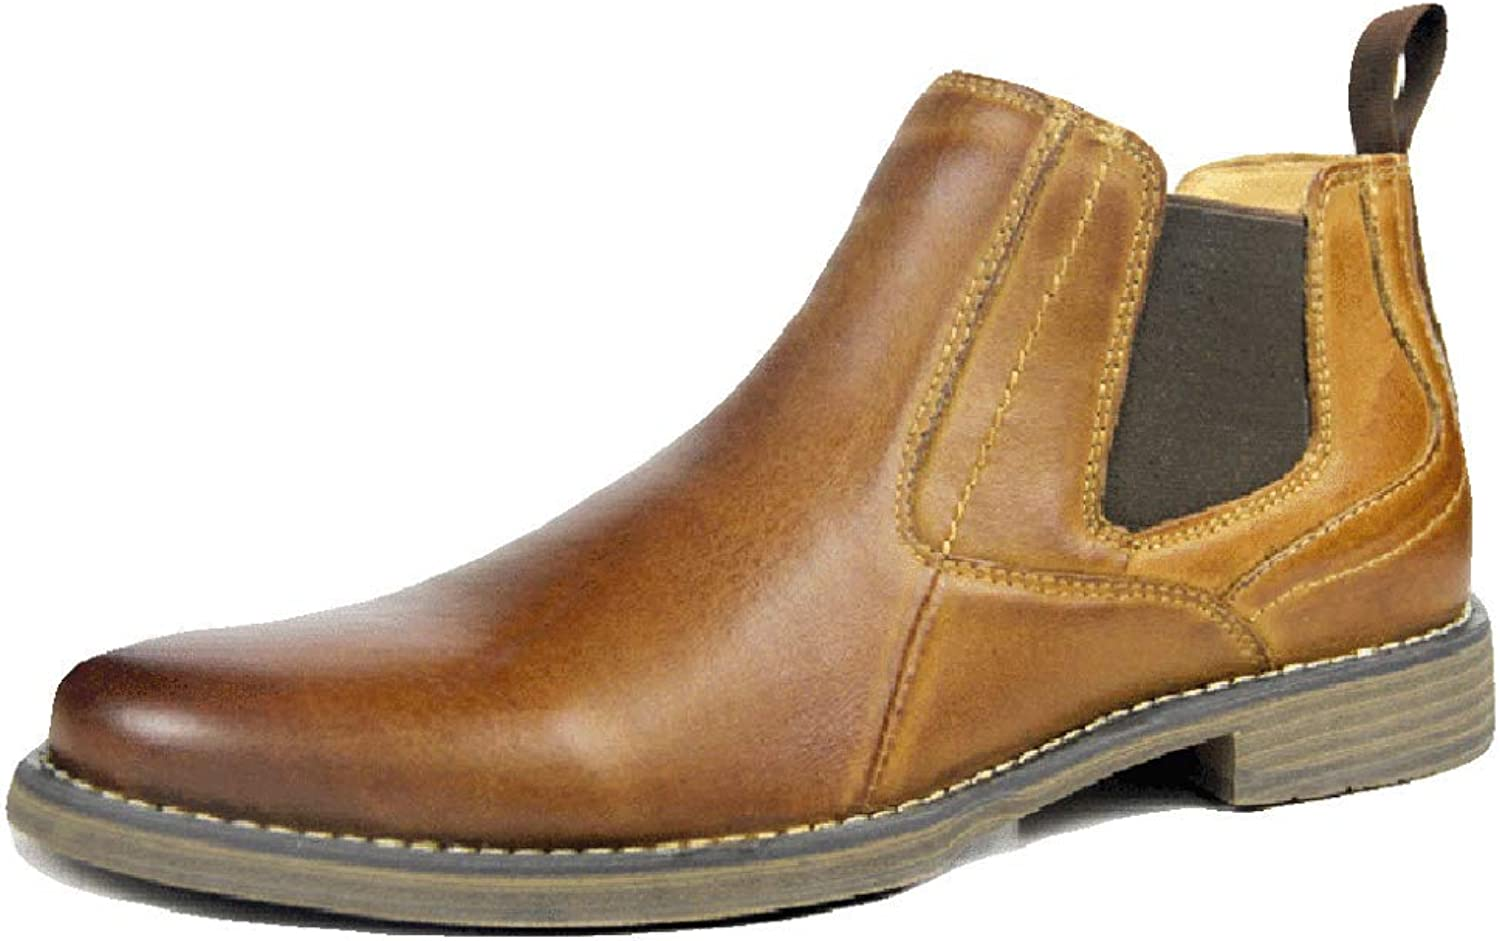 Leather Desert Ankle Boots Men's Round-Top Chelsea Boot Casual Short Tube shoes Work Utility Footwear